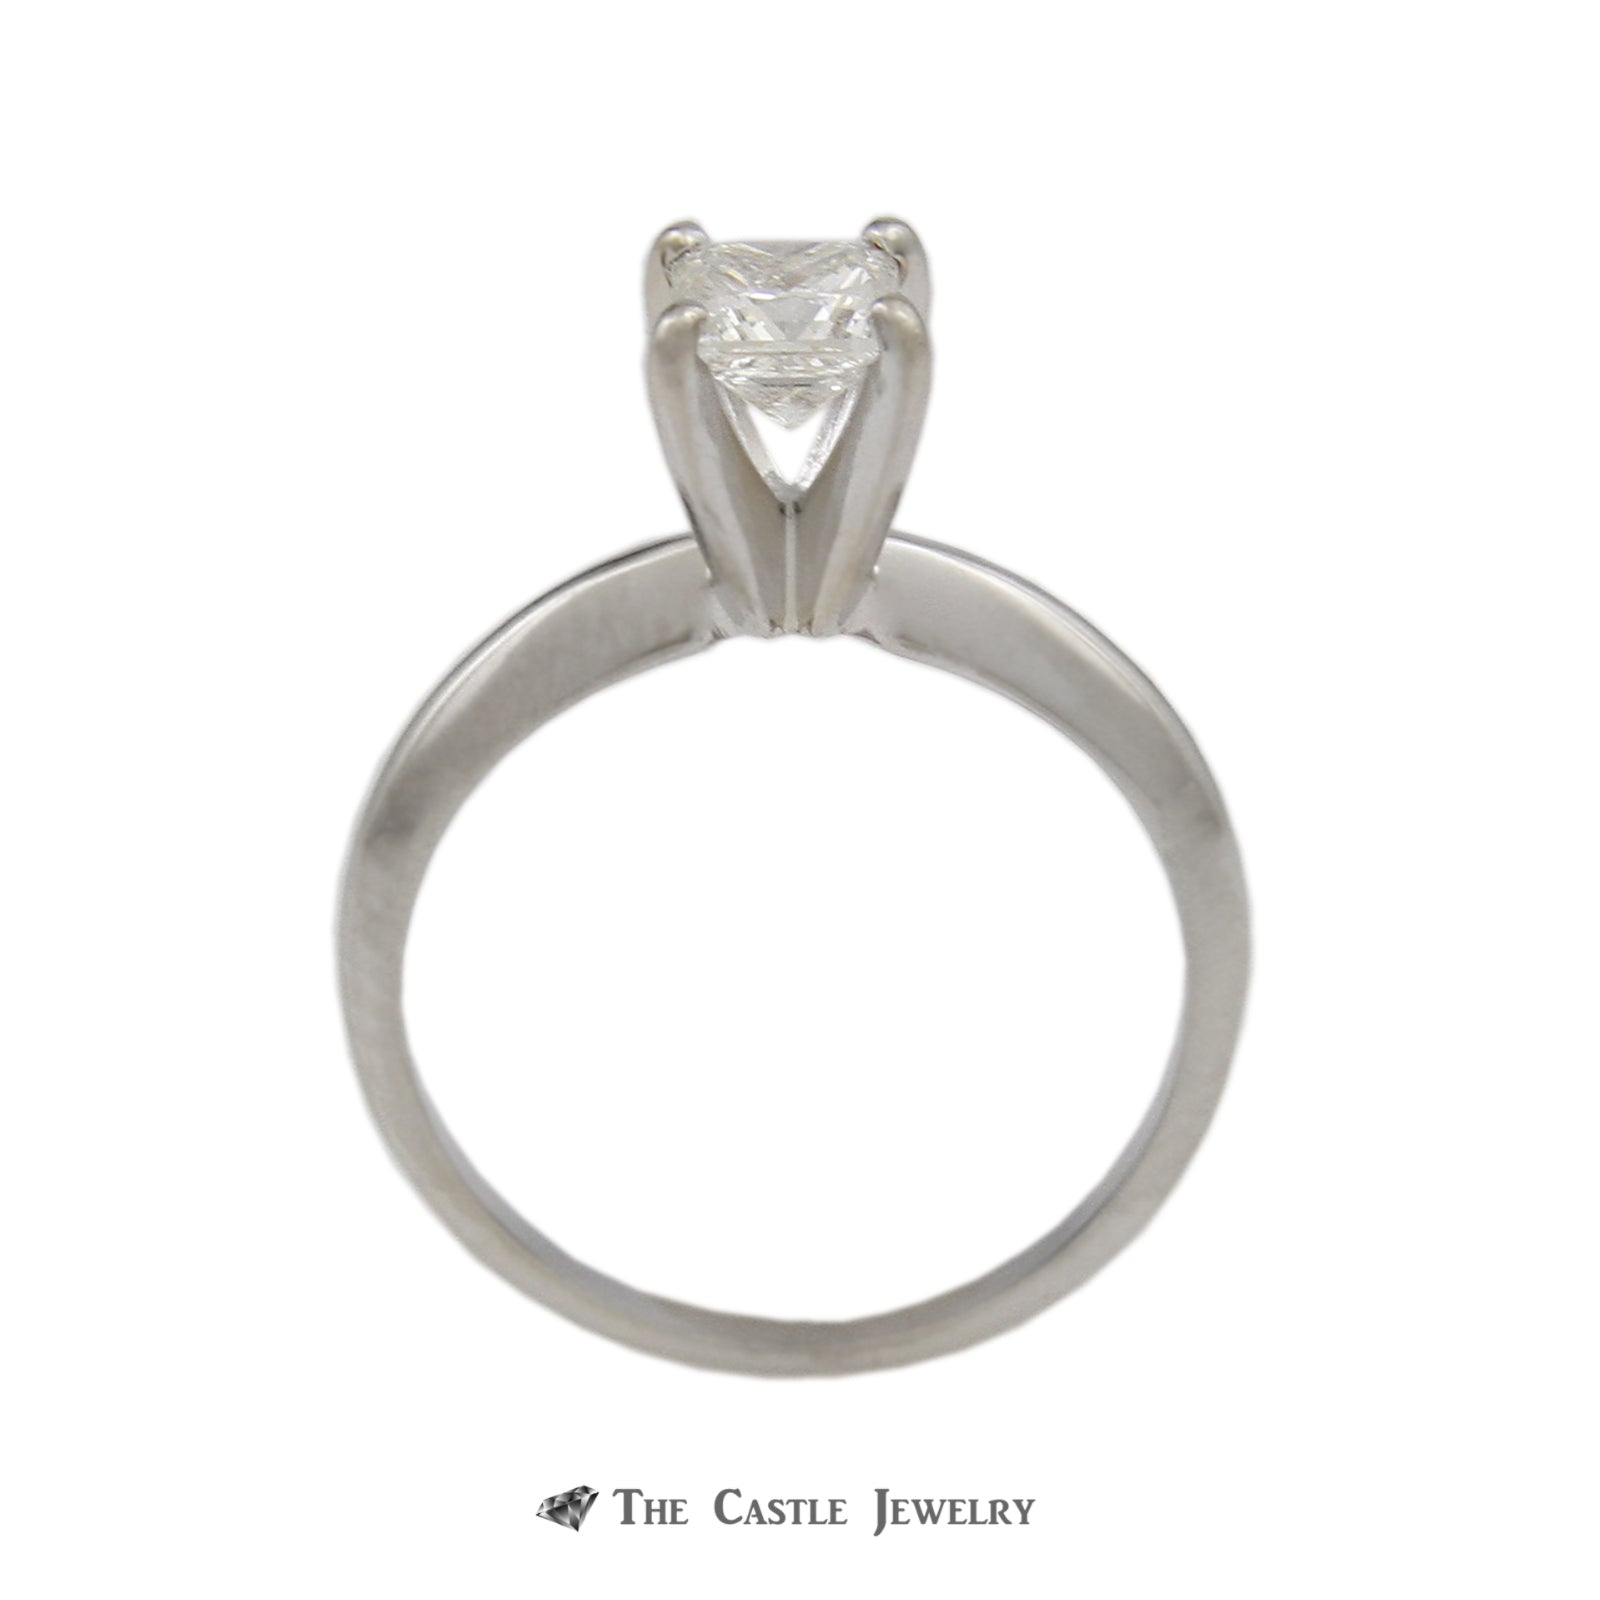 Princess Cut .50ct Diamond Solitaire Engagement Ring in 14k White Gold-1